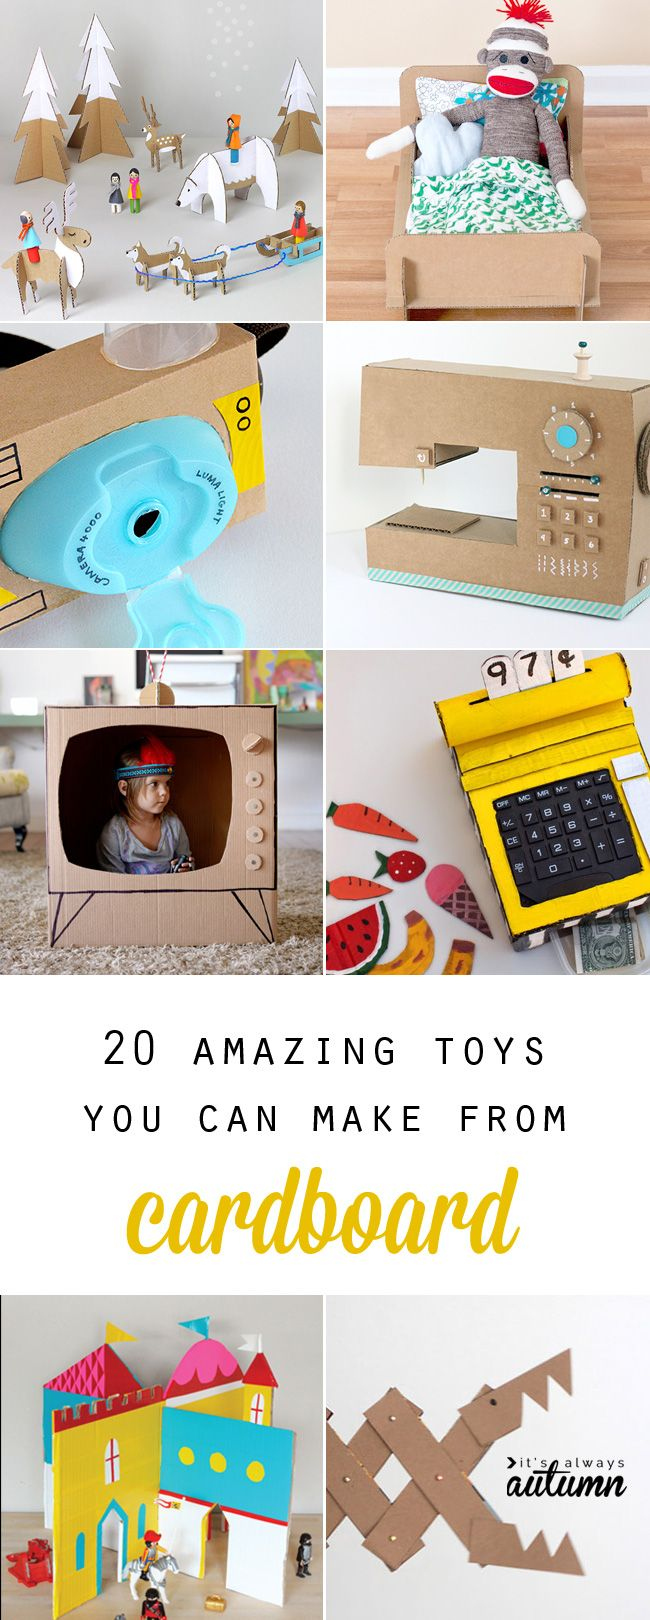 20 amazing toys you can make from cardboard - these would be great for rainy days, summer fun, or even for Christmas gifts!